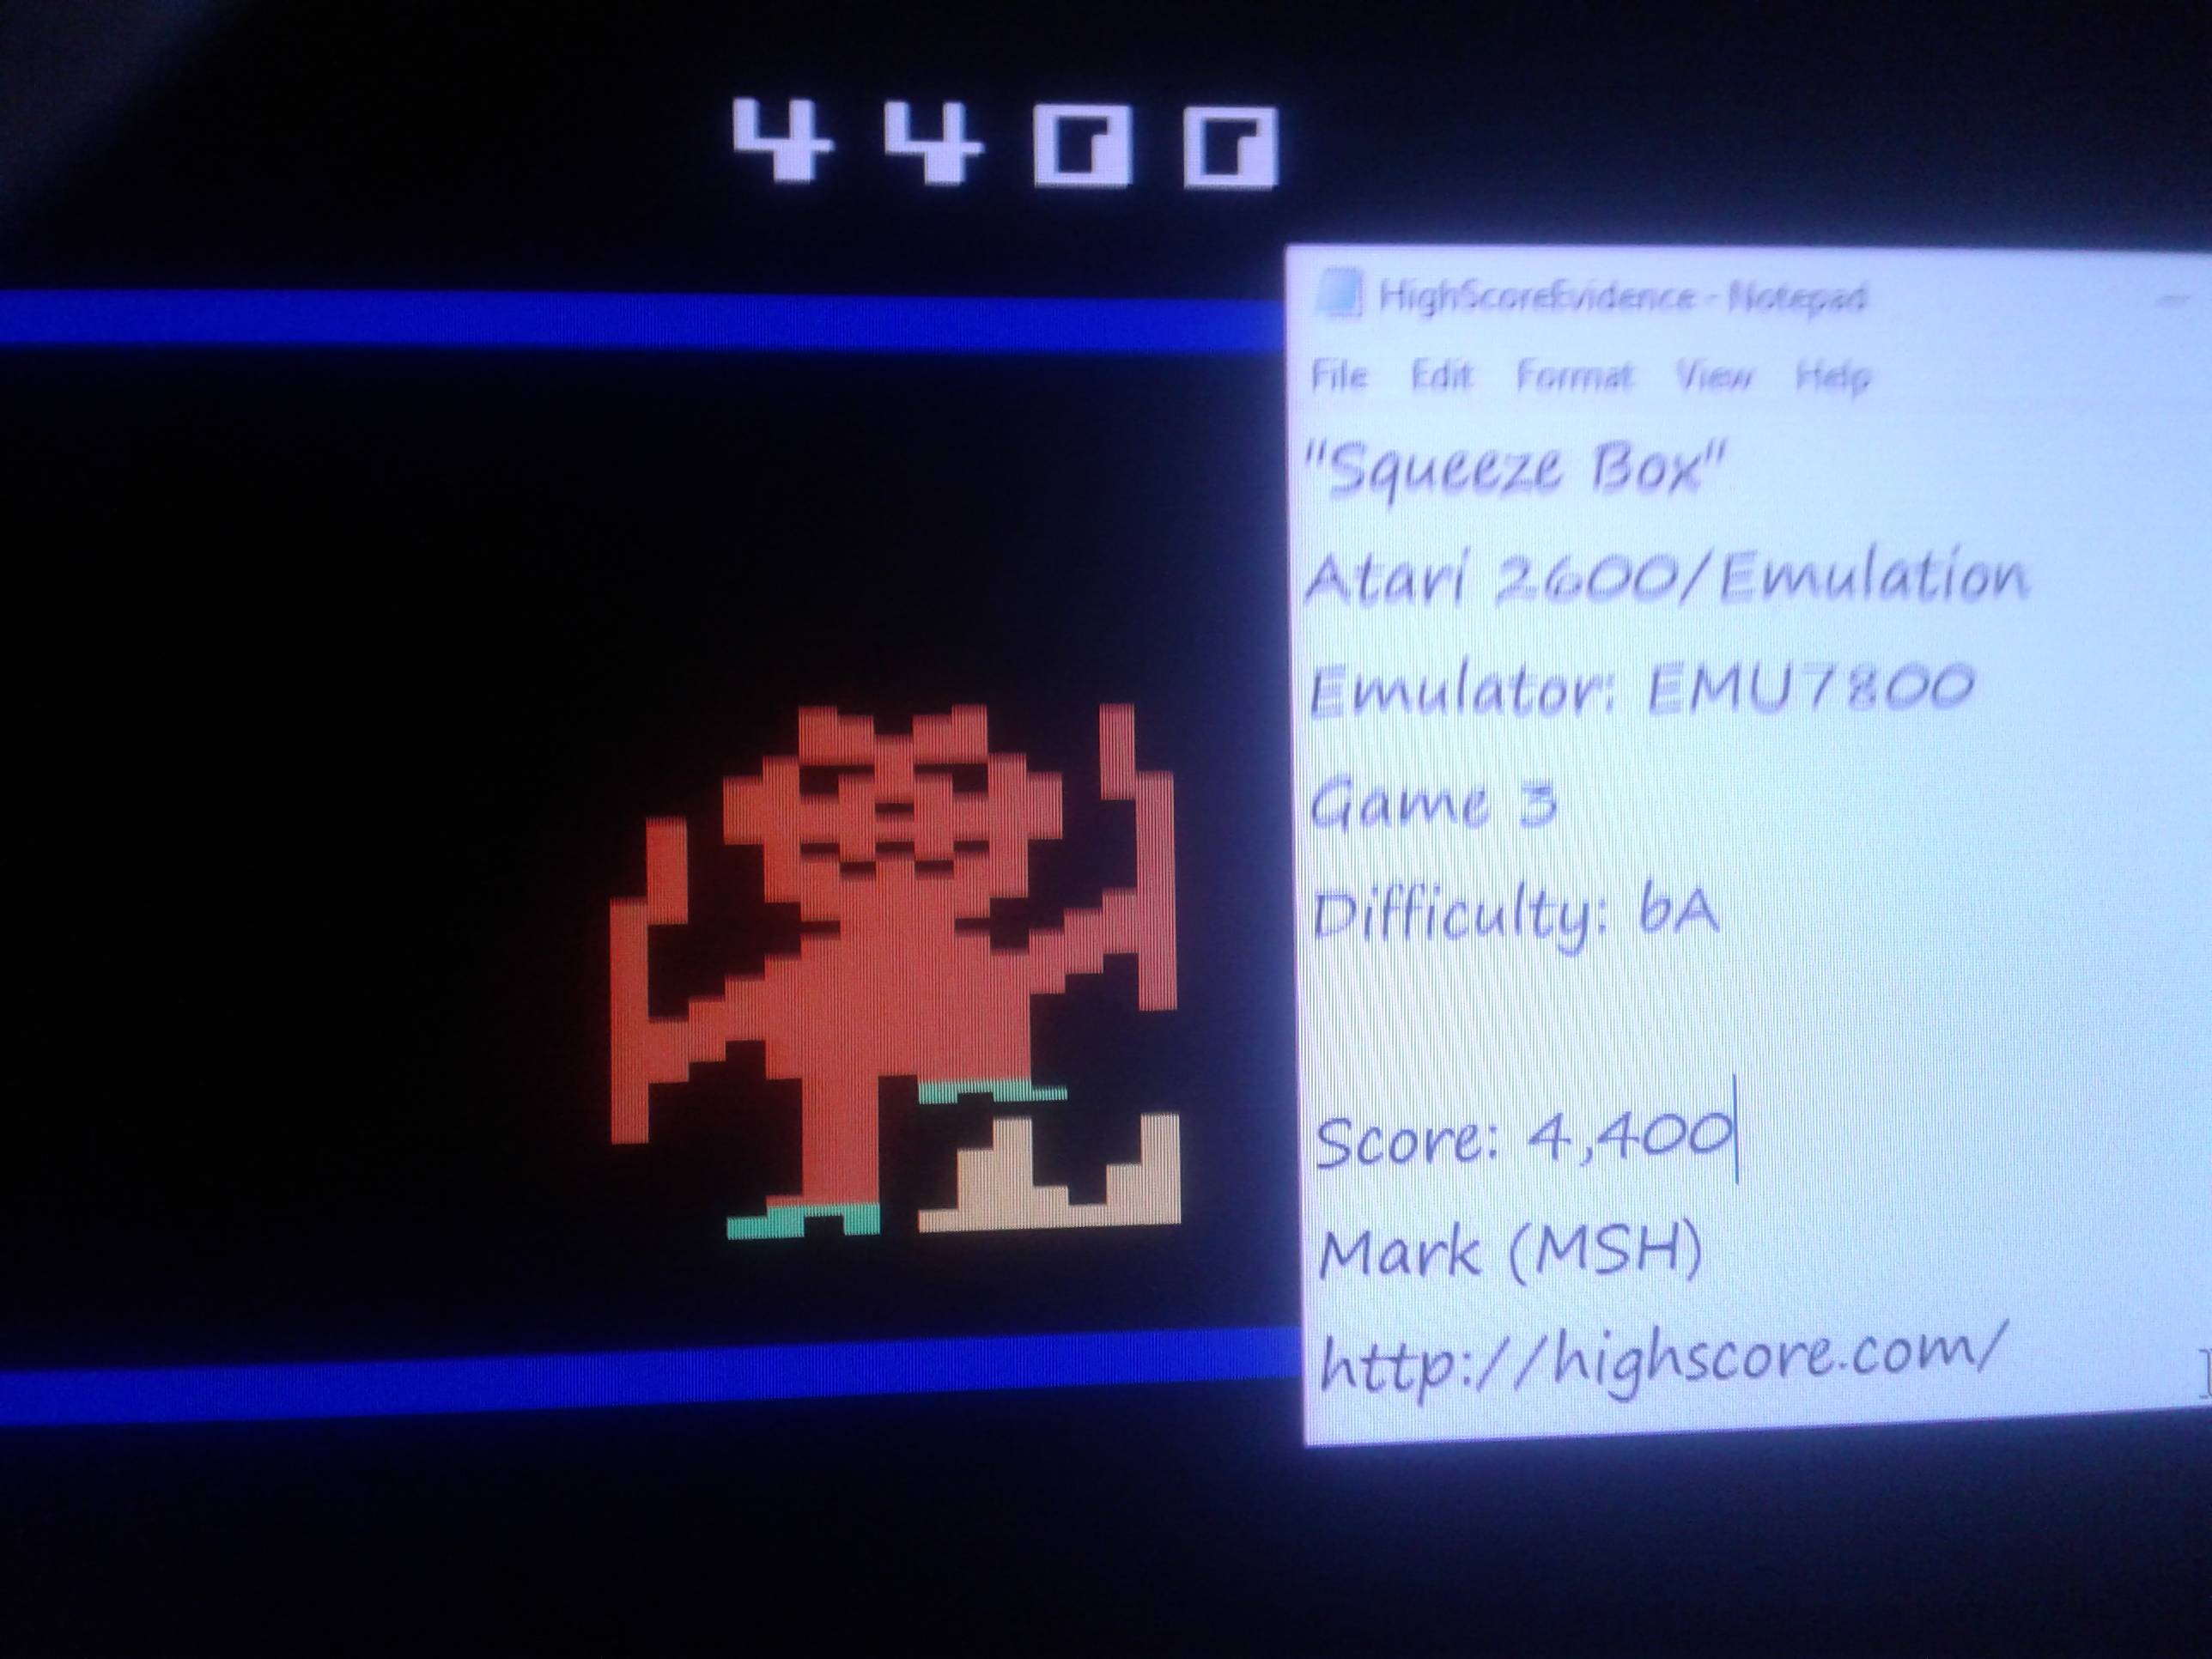 Mark: Squeeze Box: Game 3 [Difficulty BA] (Atari 2600 Emulated) 4,400 points on 2019-01-23 23:41:31